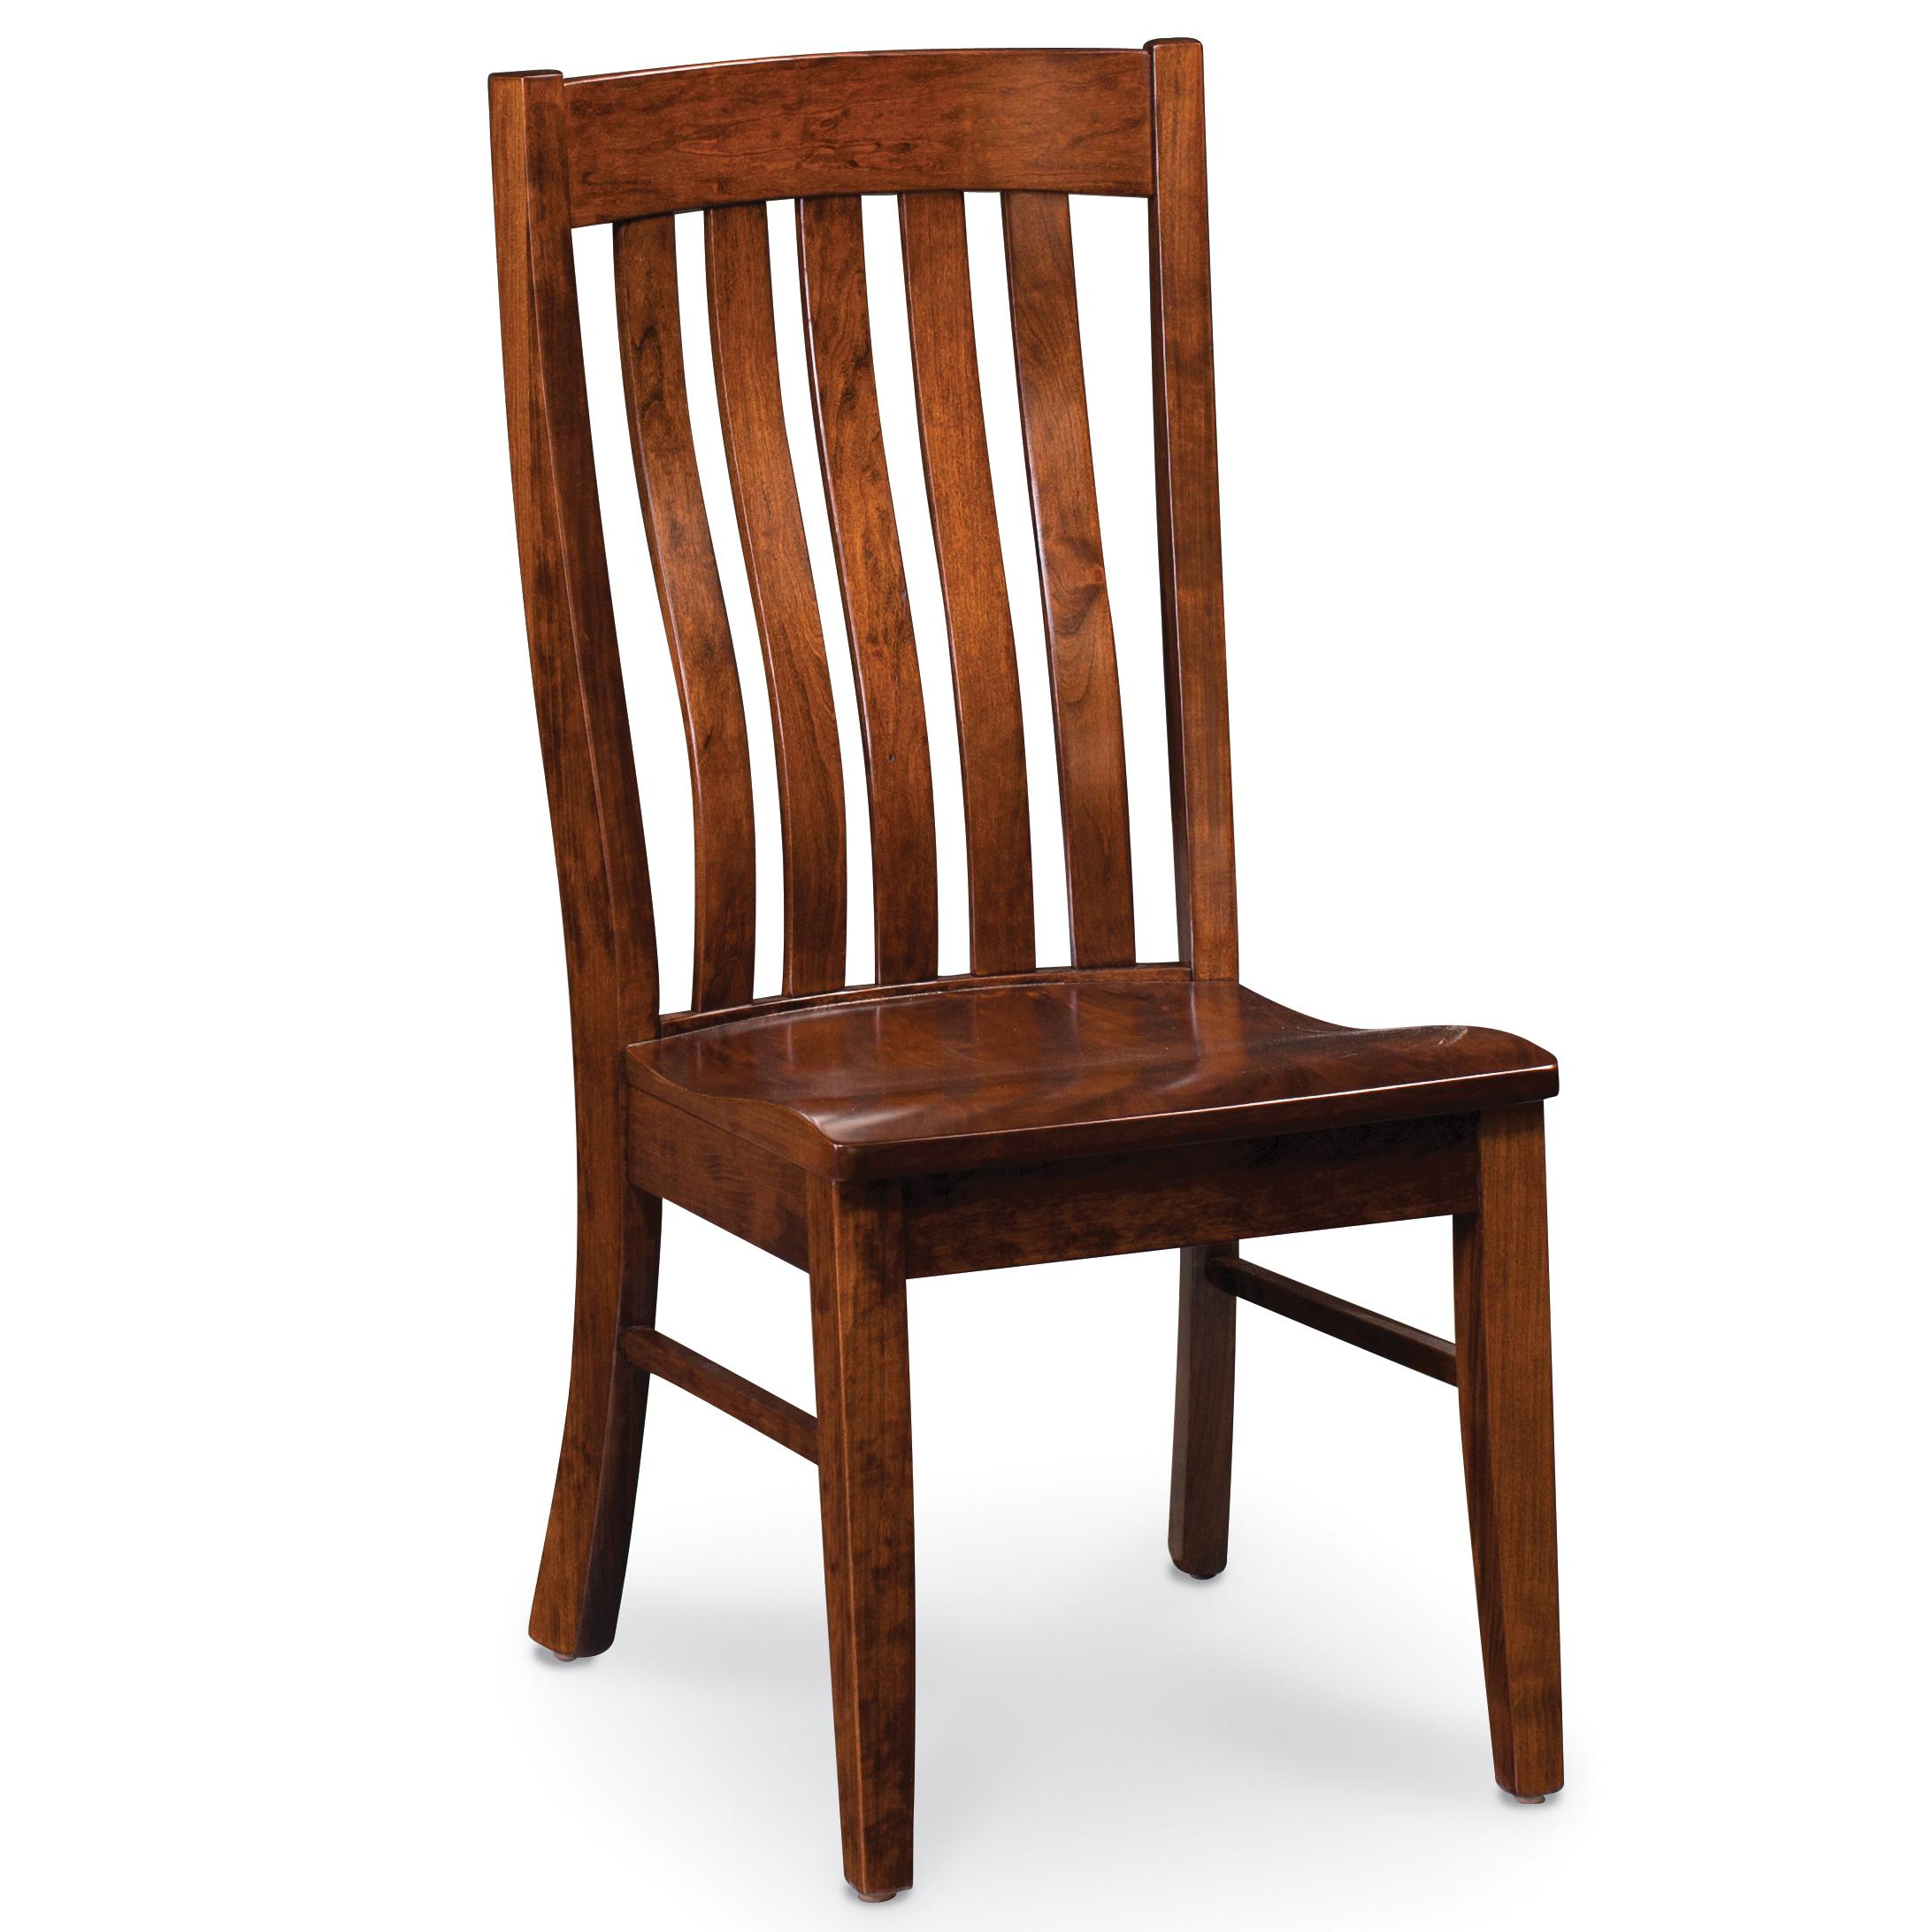 Simply amish chairs ecbrd 02a w bradford side chair with for Simply amish furniture